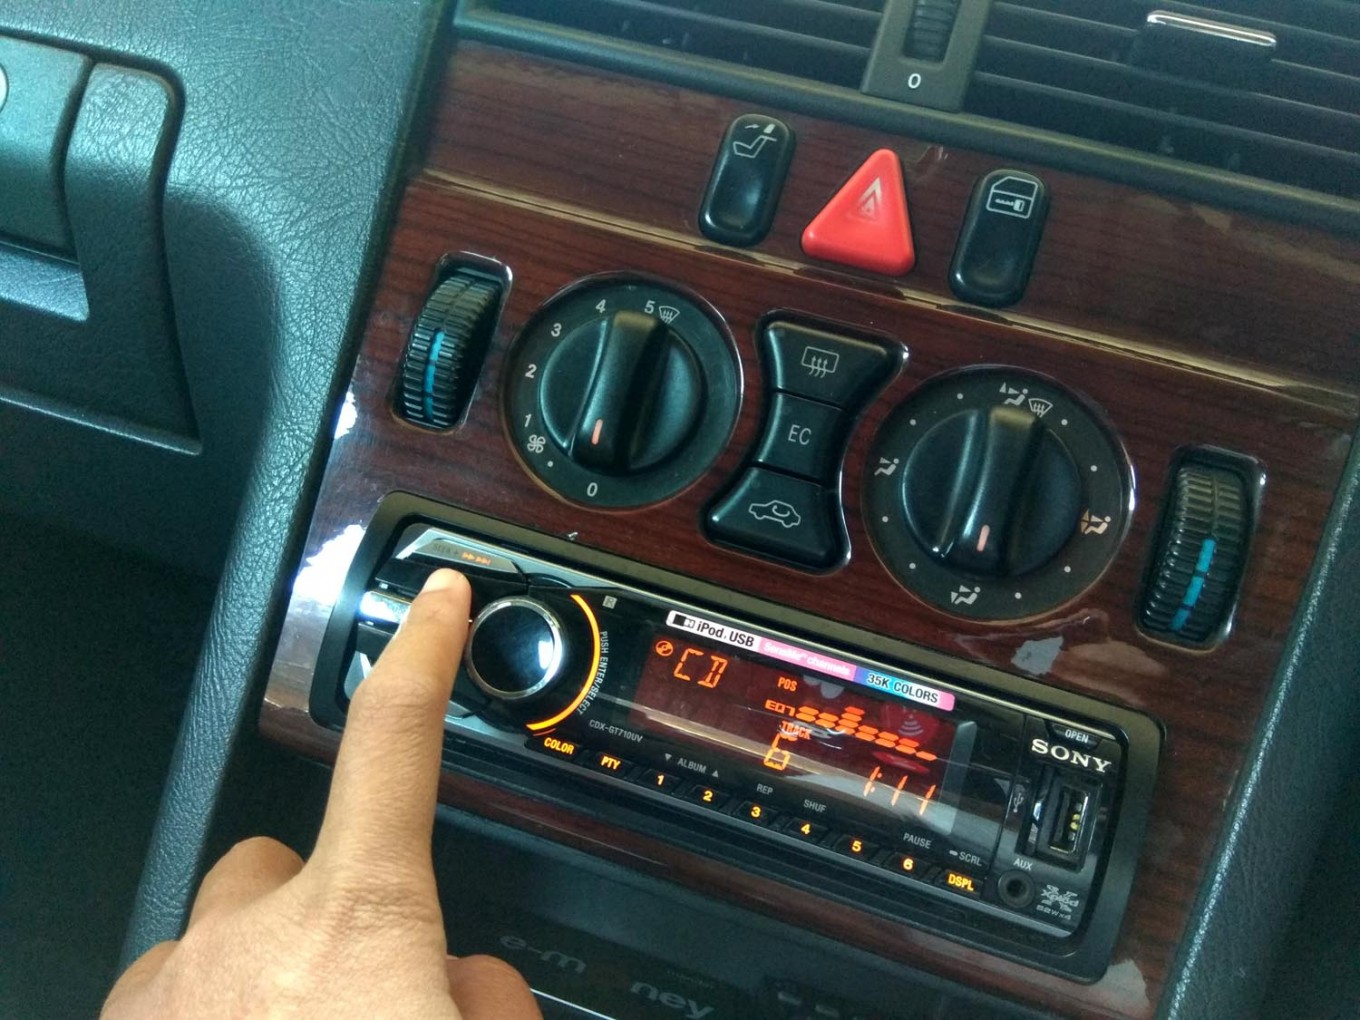 Listening to music while driving violates the law: Traffic chief